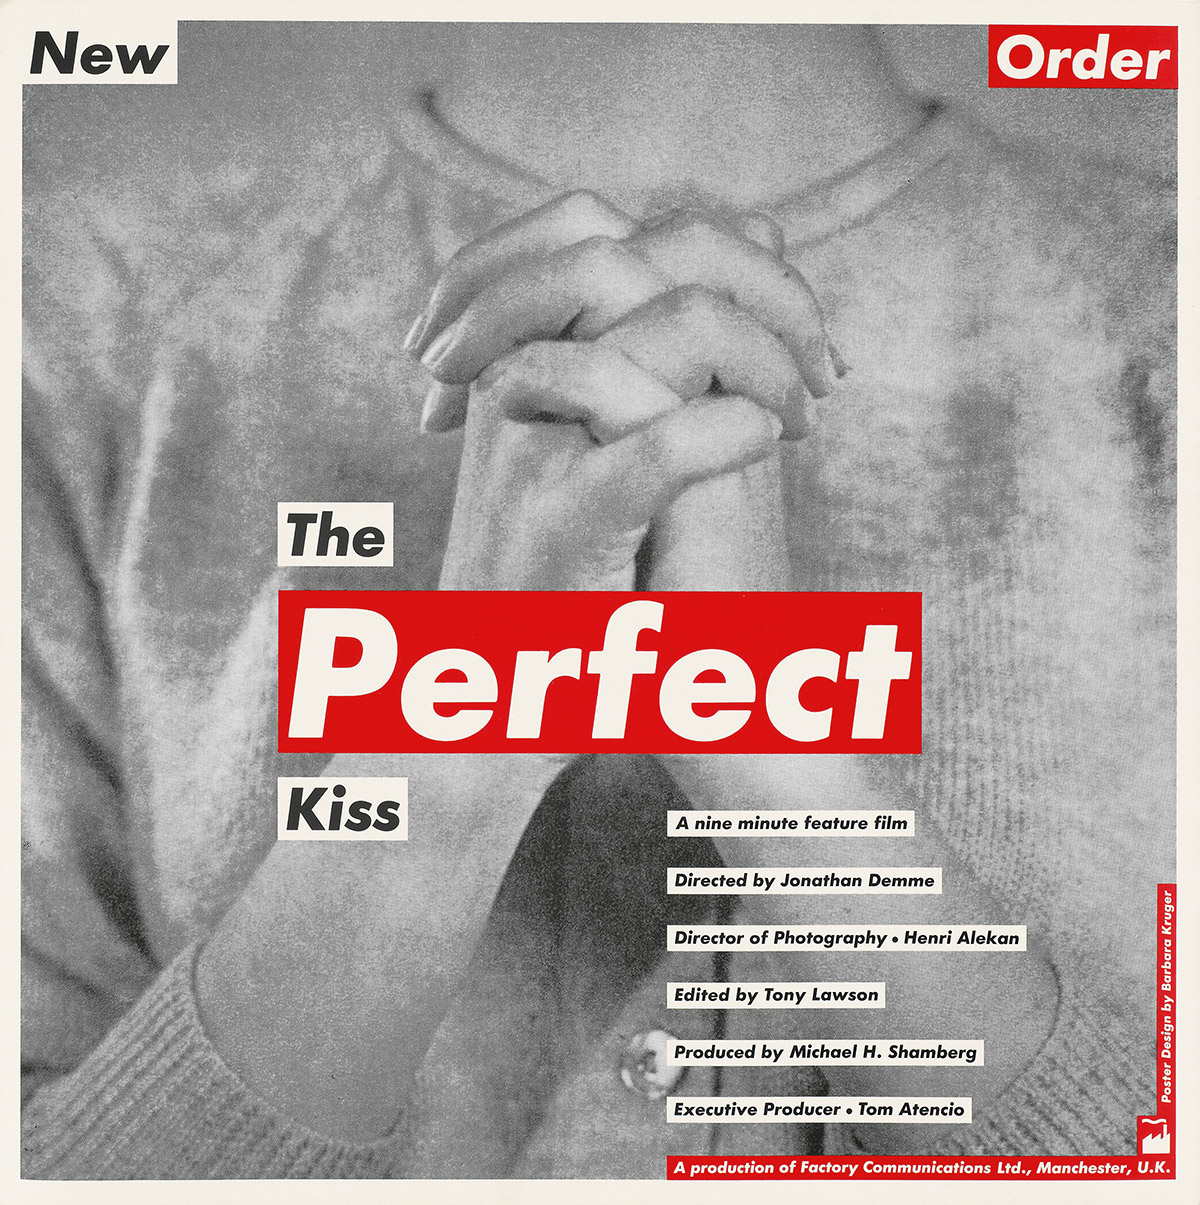 BARBARA-KRUGER-(1945--)-THE-PERFECT-KISS--NEW-ORDER-1985-24x